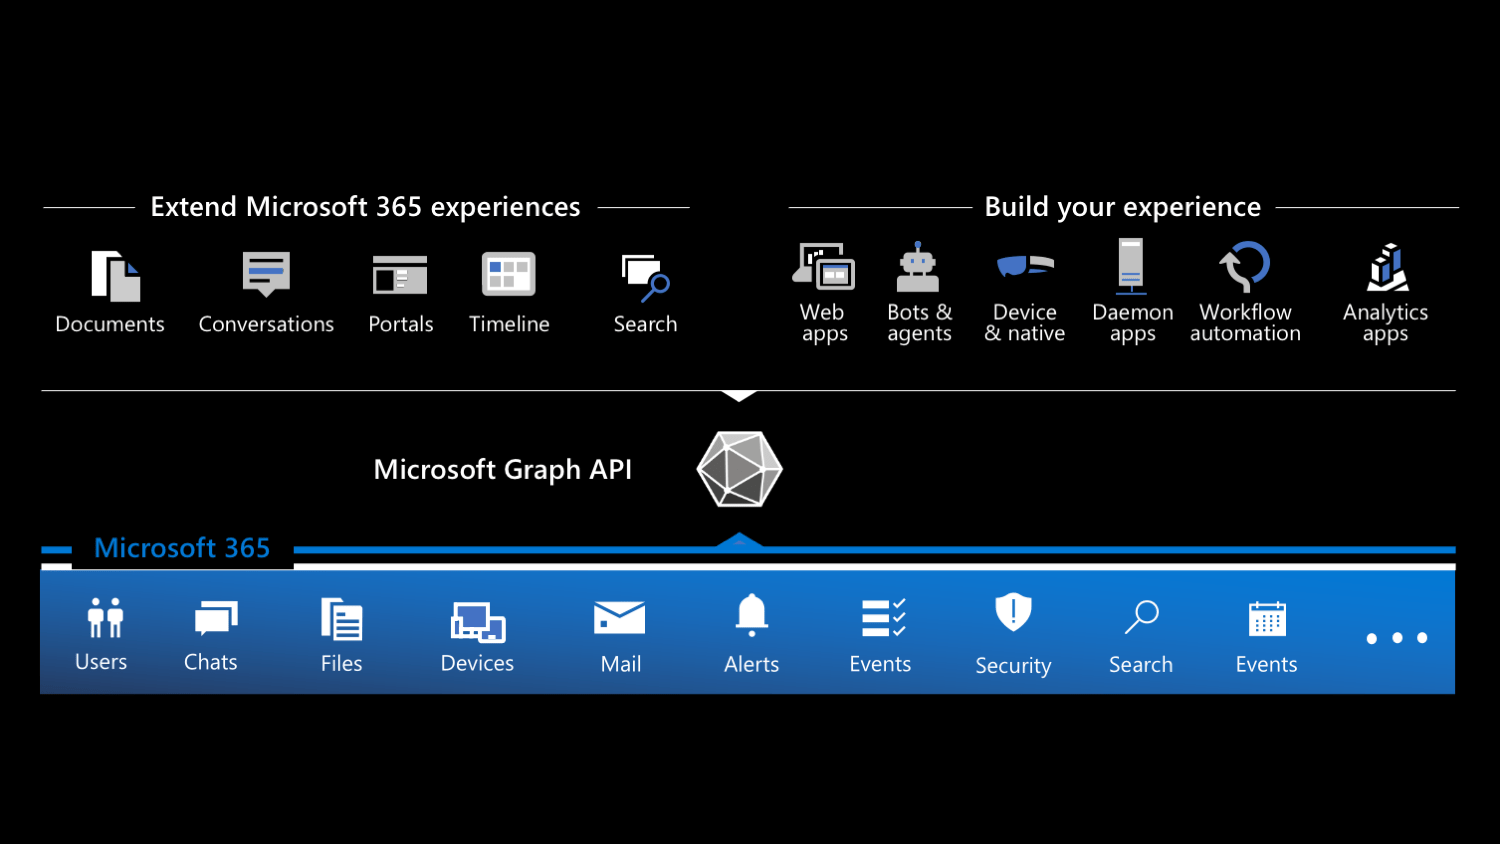 Types of apps that you can build on Microsoft 365 grouped into extensions and custom apps